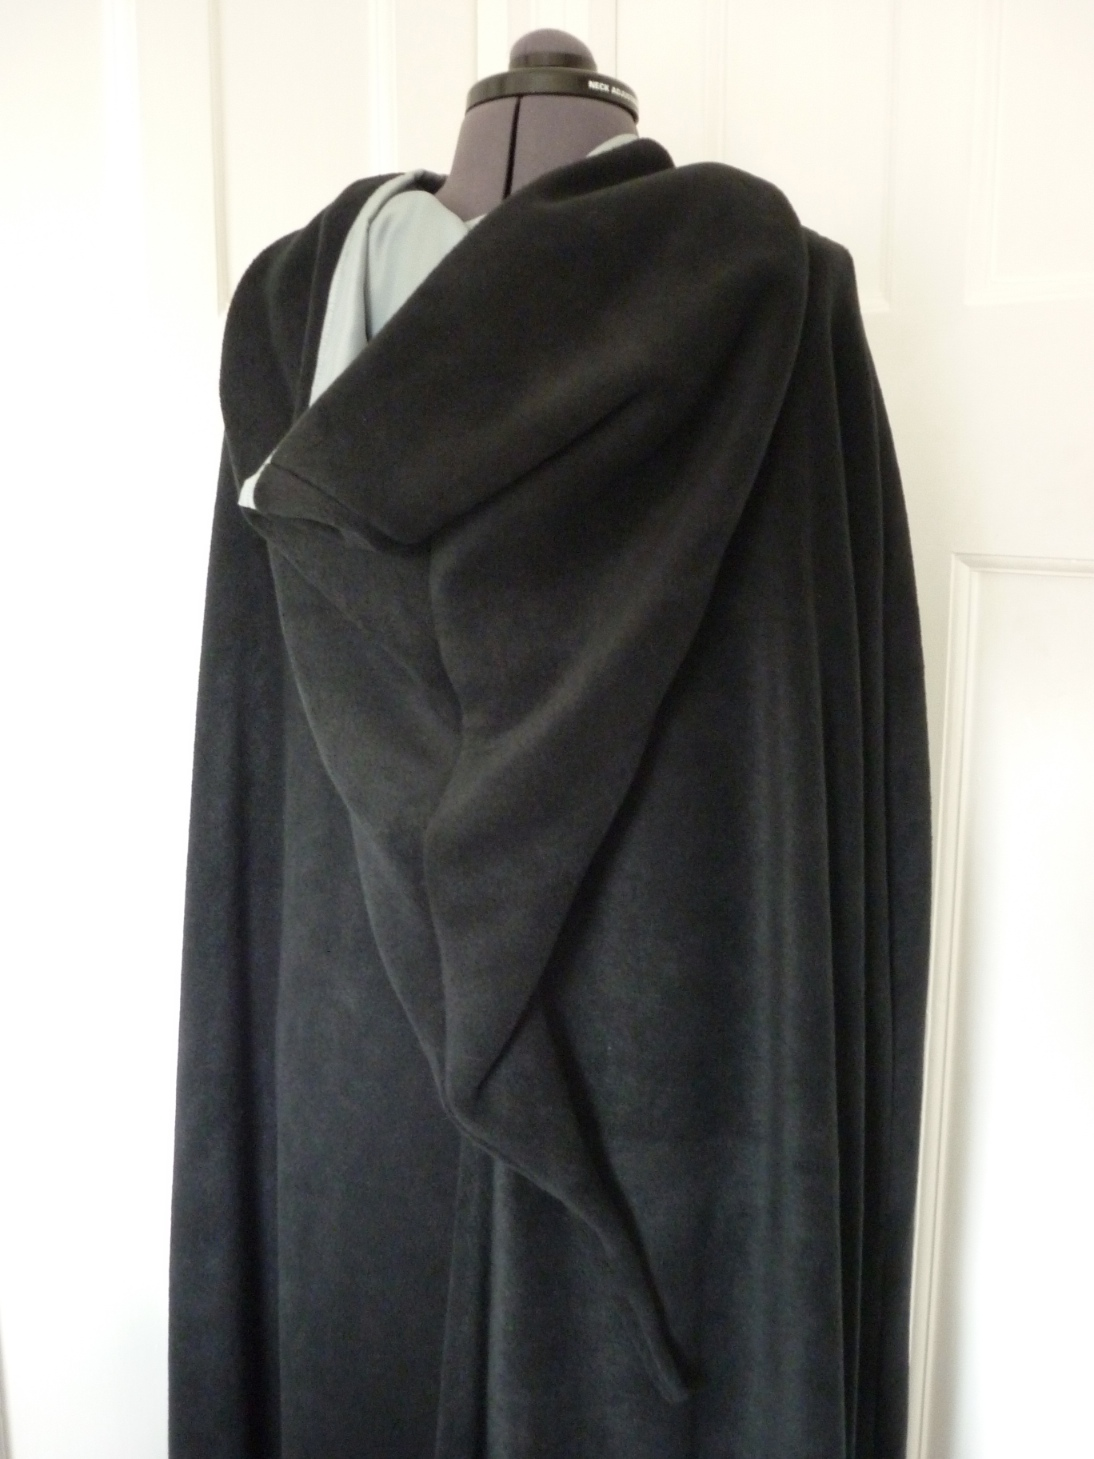 Full-length cloak with contrasting lining - pointed hood - choice of colours - made to order